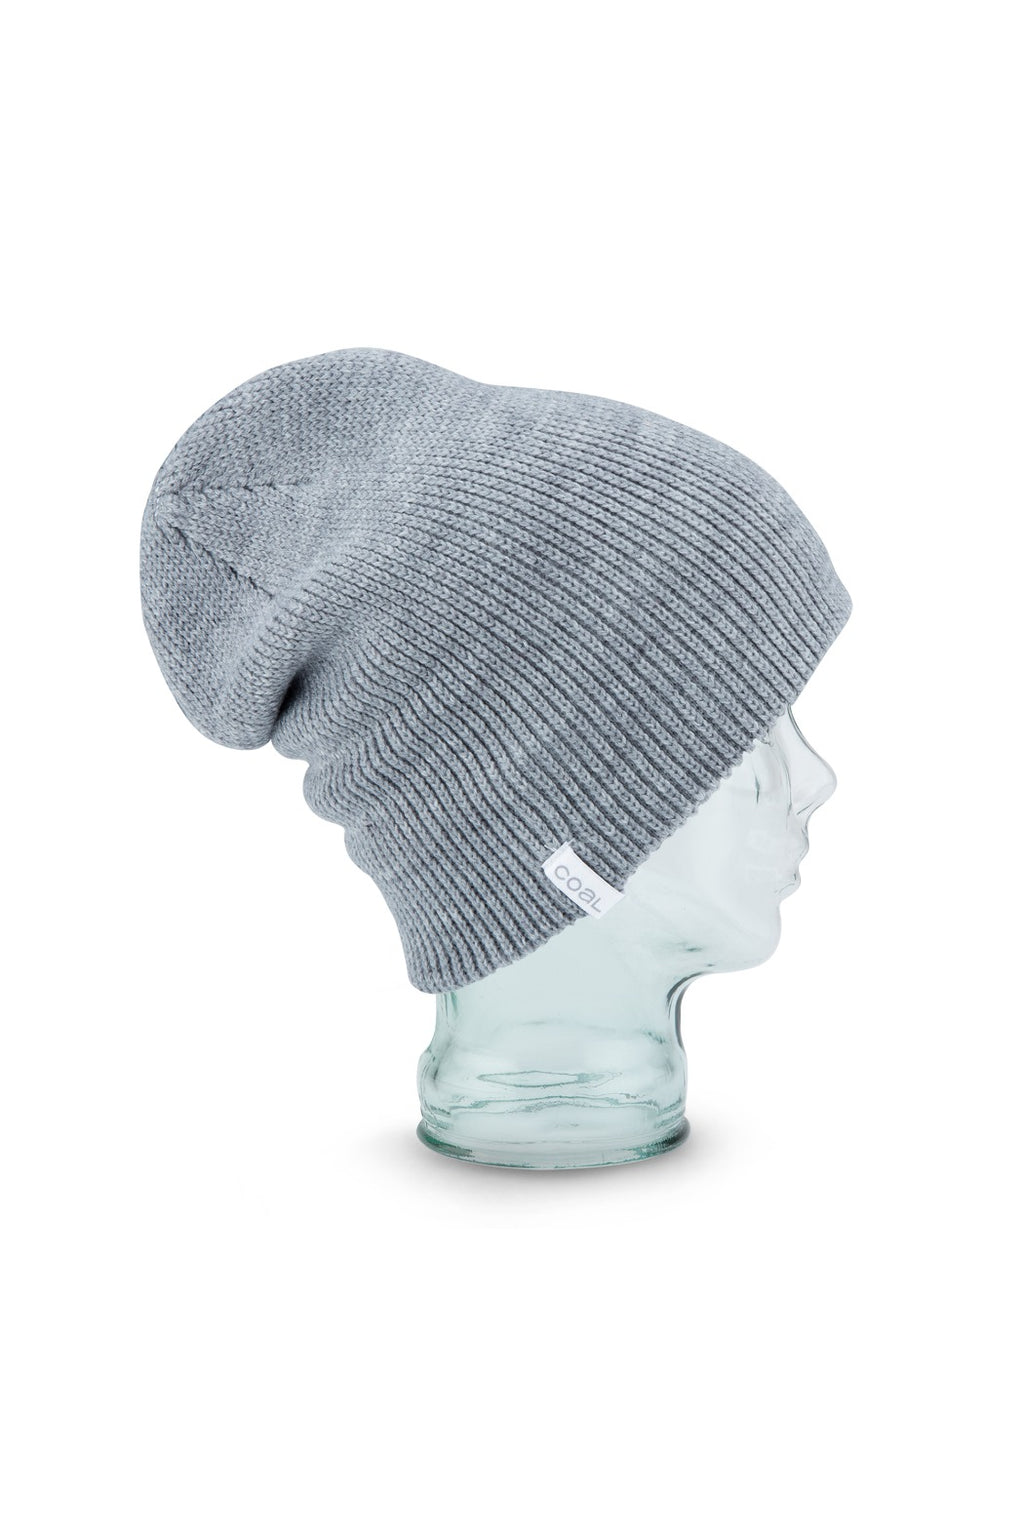 Coal Frena Solid Beanie in Heather Grey